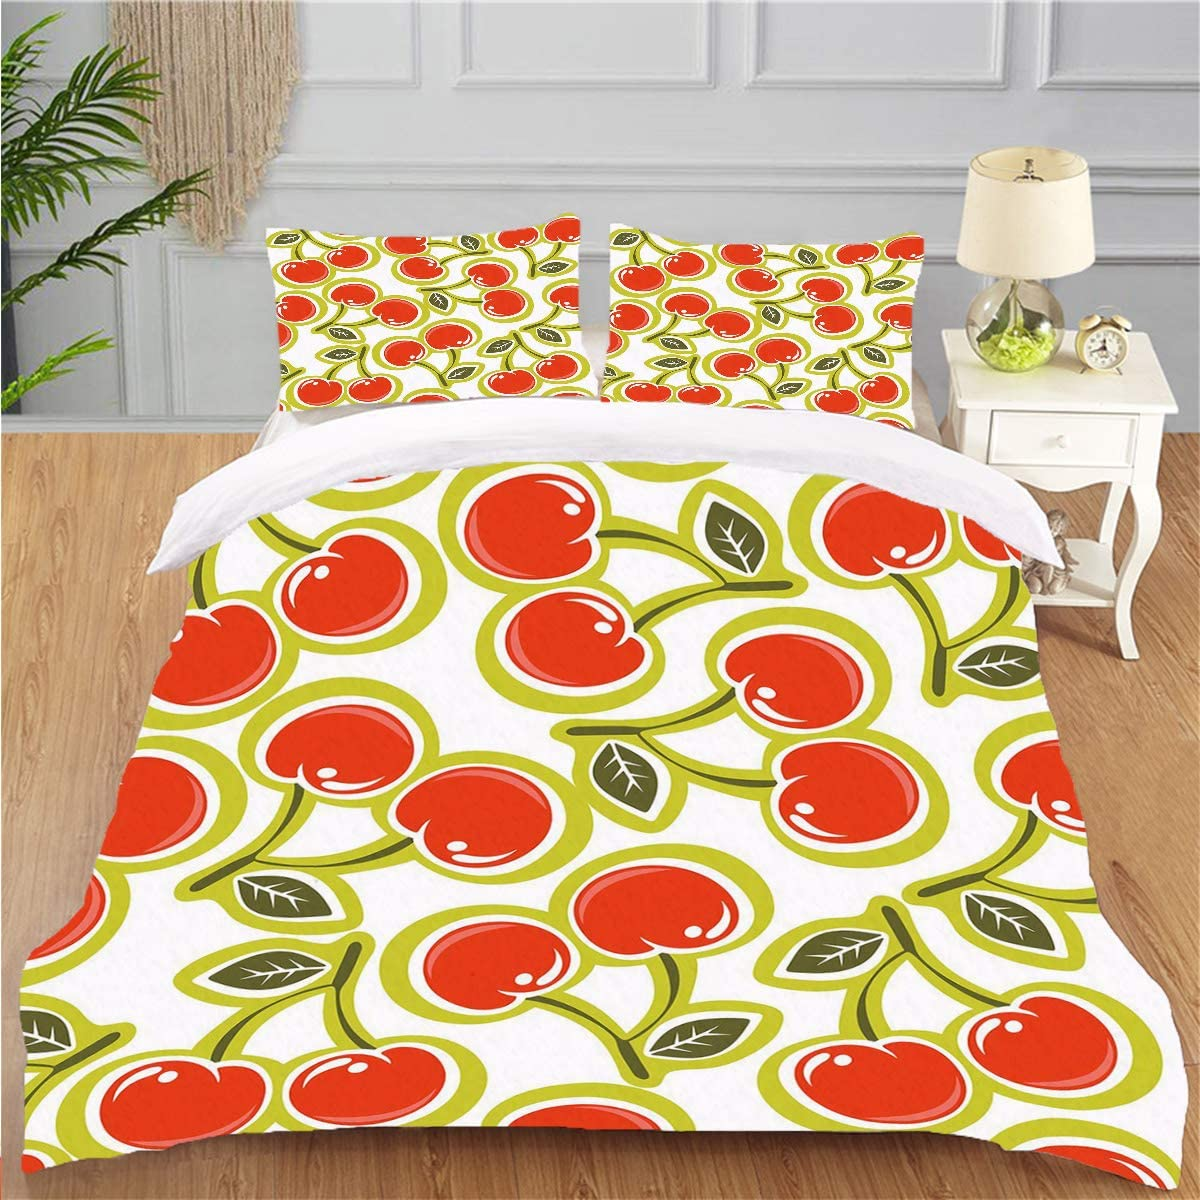 OTTOSUN Bedding Personality 3 Piece Duvet Cover Set Fruit Sweet Yummy Ornate Cherry and Leaves Pattern Fresh Food Fun Art Apple Green Red White Soft Breathable Home Warm Duvet Comforter Cover,Full